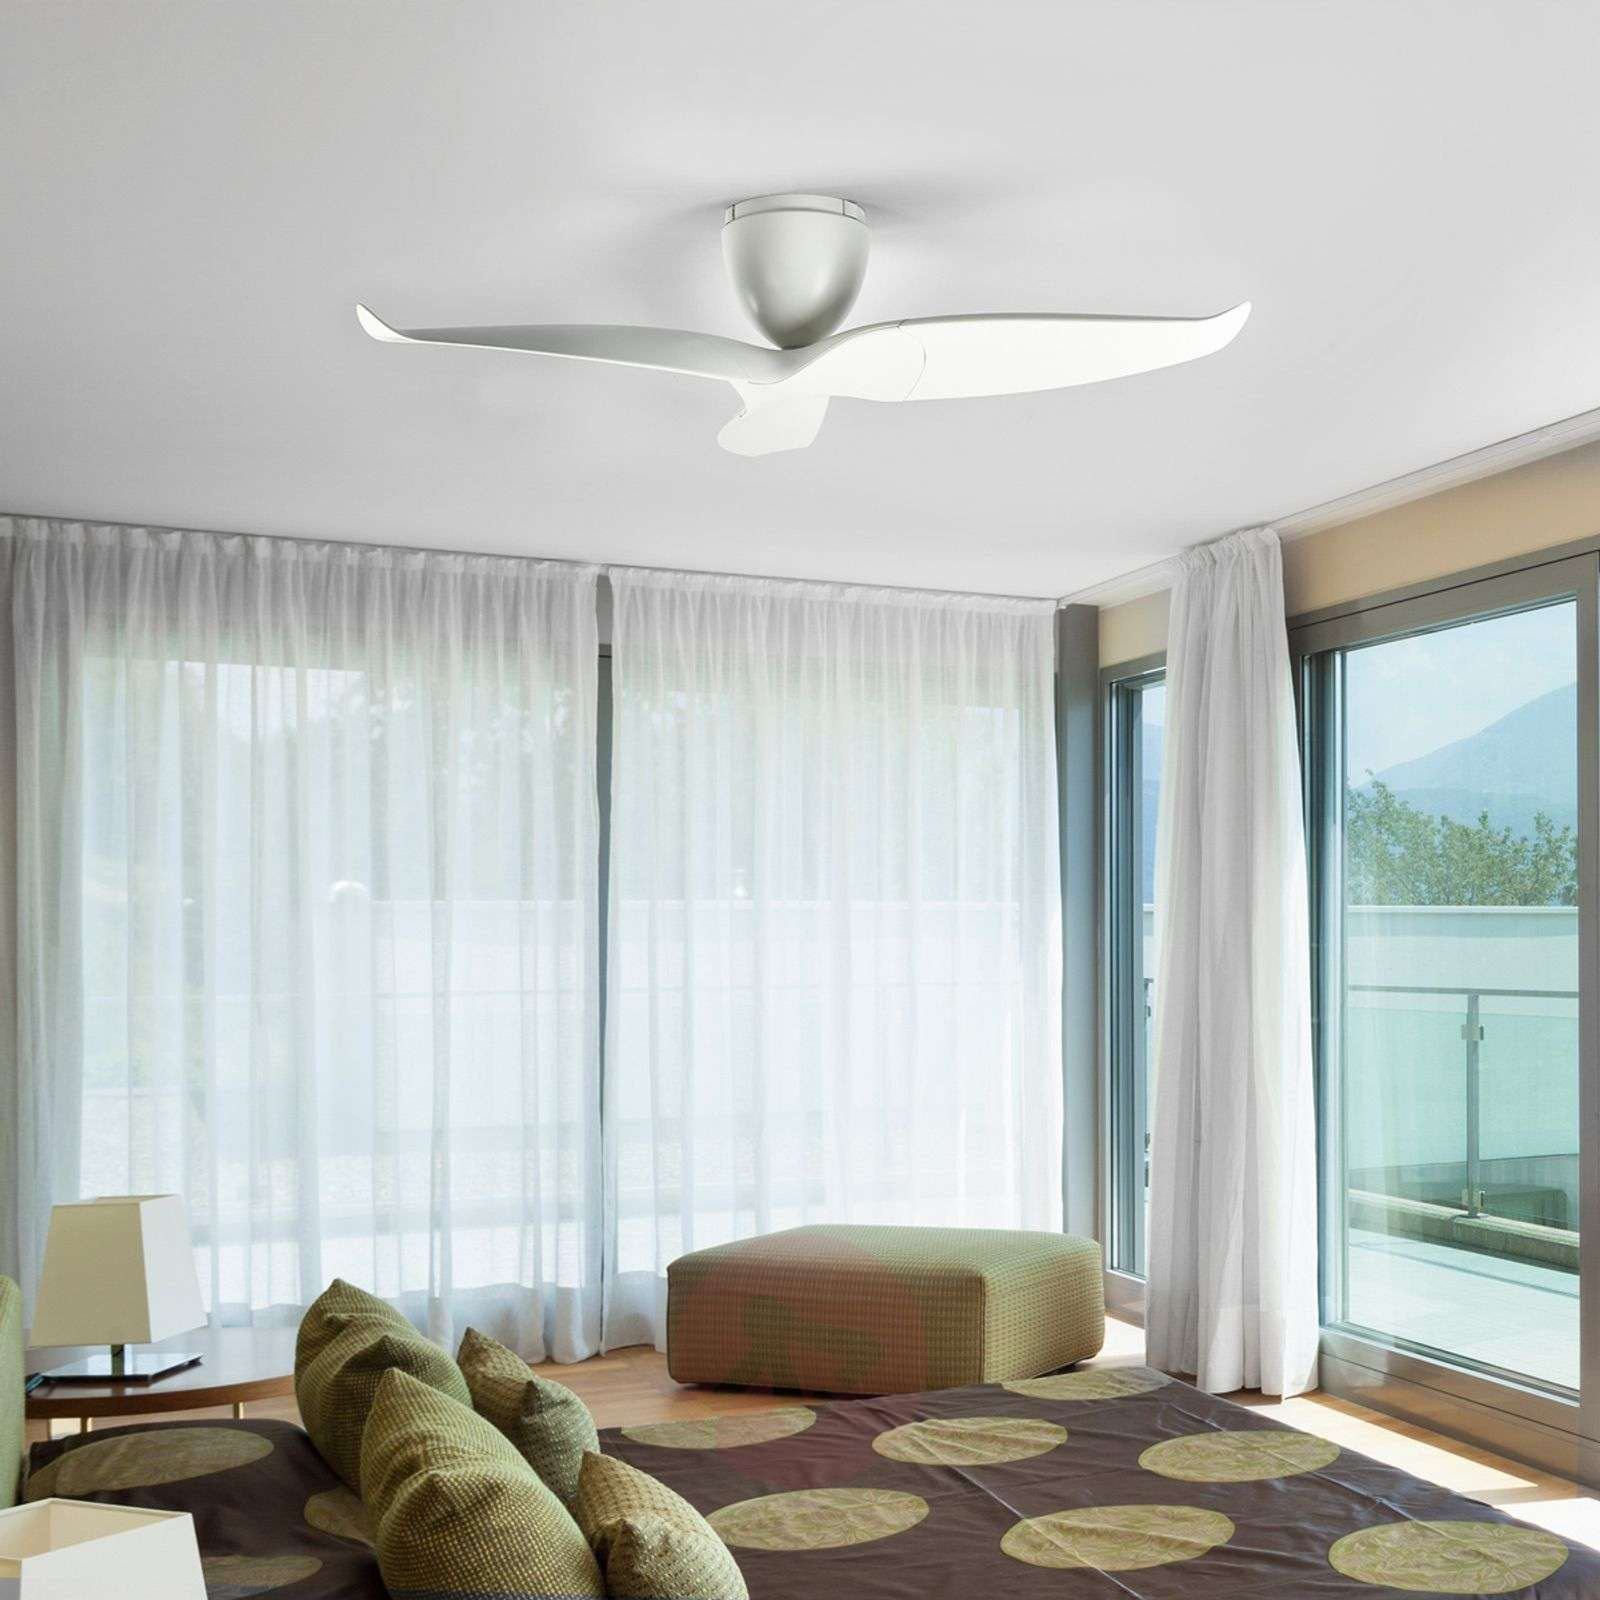 Buy Ceiling Fans without Lighting online from Lights